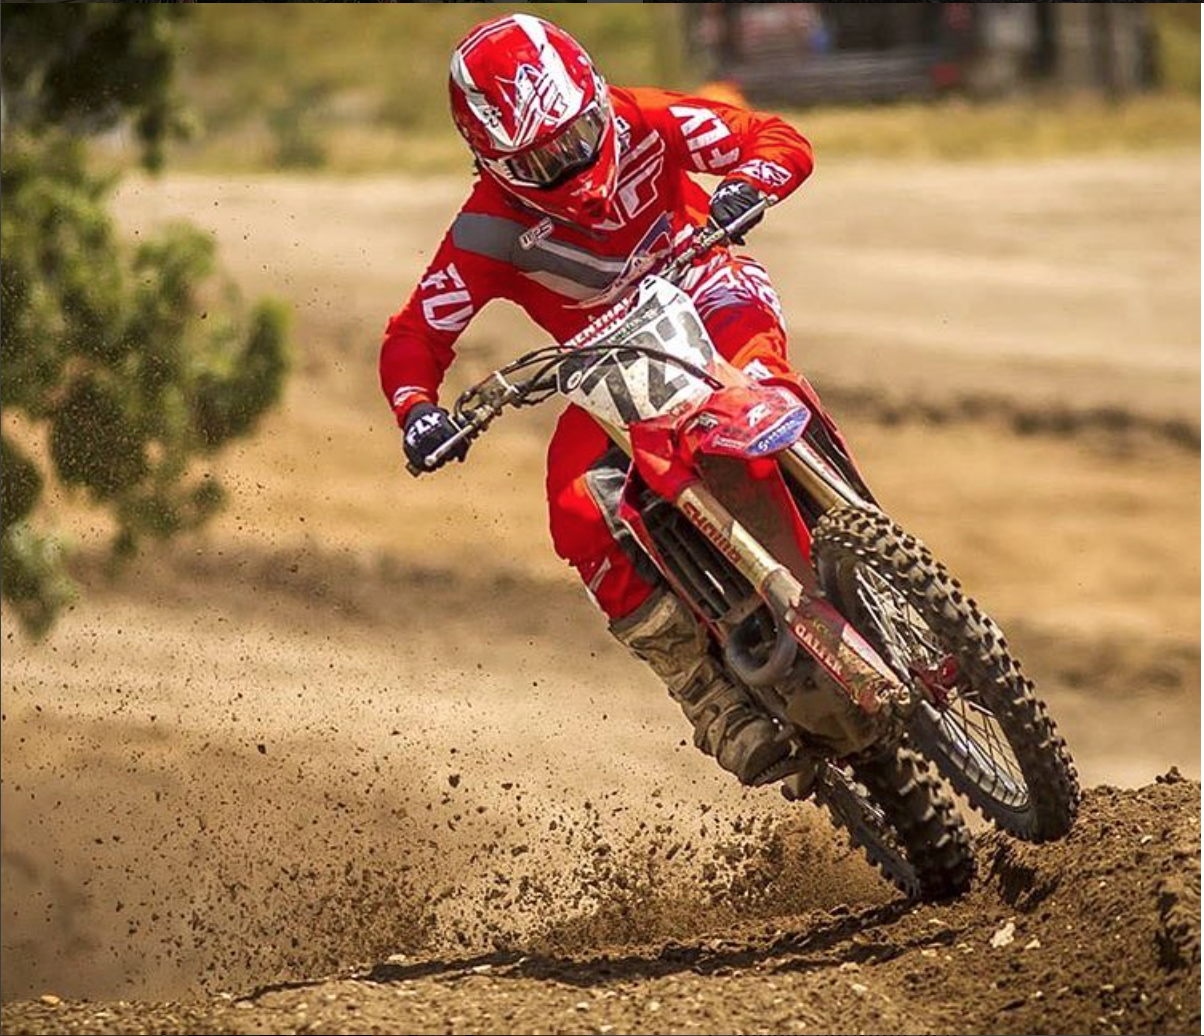 Tyler Enticknap has seen a huge improvement in his injury recovery and race craft thanks to Taylor and his support. The benefits of a well approached plan and conditioning are invaluable to a top level racer. P/C  @szumski_photography